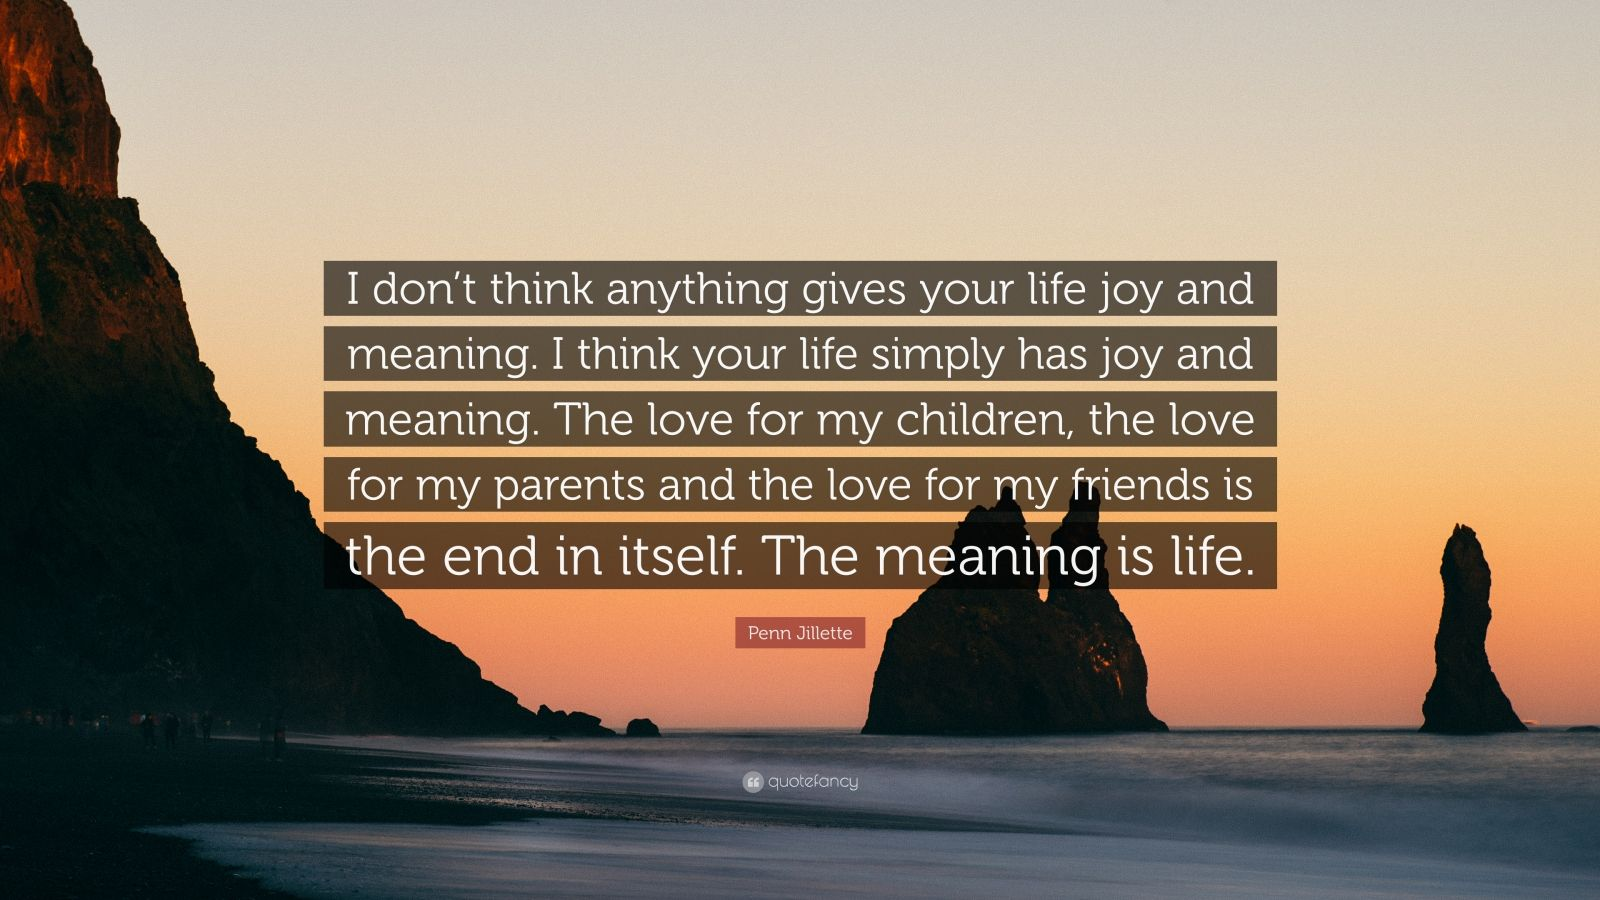 "Penn Jillette Quote: ""I don't think anything gives your life joy and meaning. I think your life simply has joy and meaning. The love for my children, the love for my parents and the love for my friends is the end in itself. The meaning is life."""